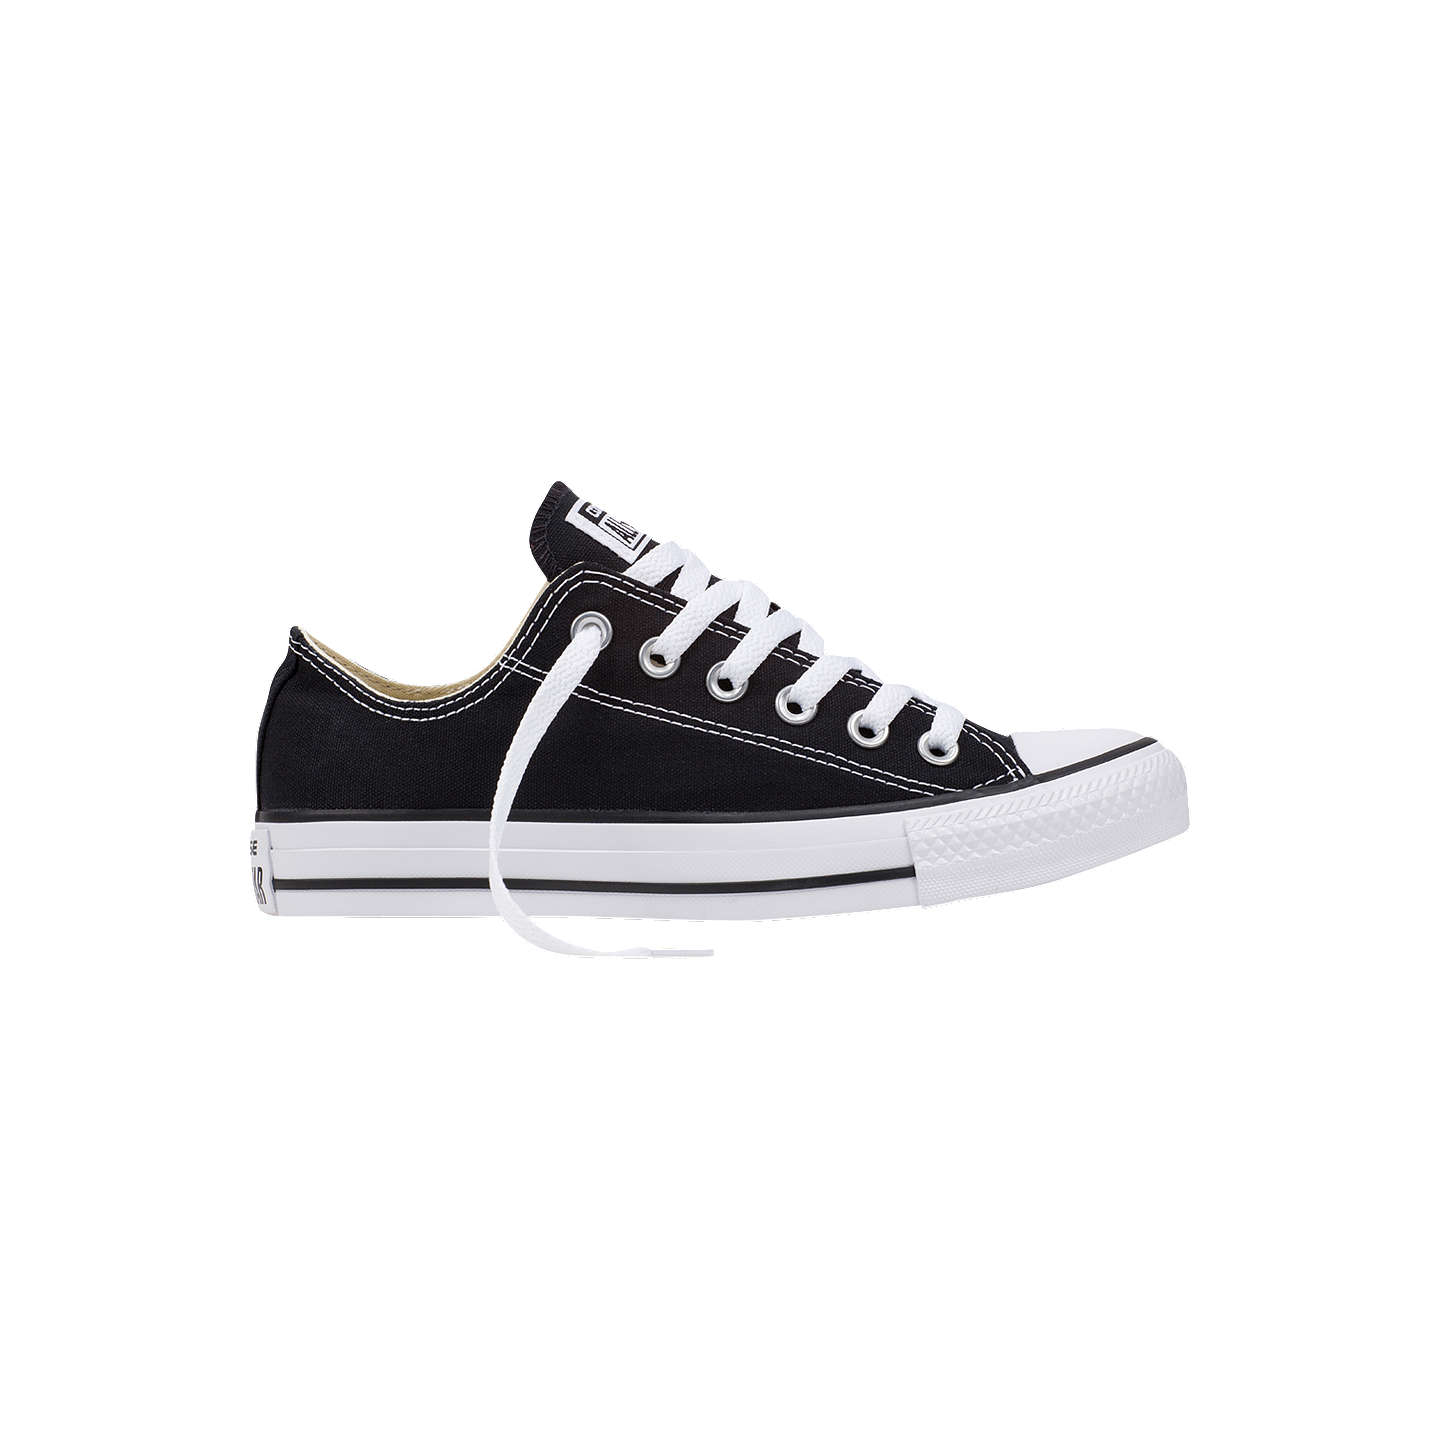 BuyConverse Chuck Taylor All Star Ox Trainers, Black, 9 Online at johnlewis.com